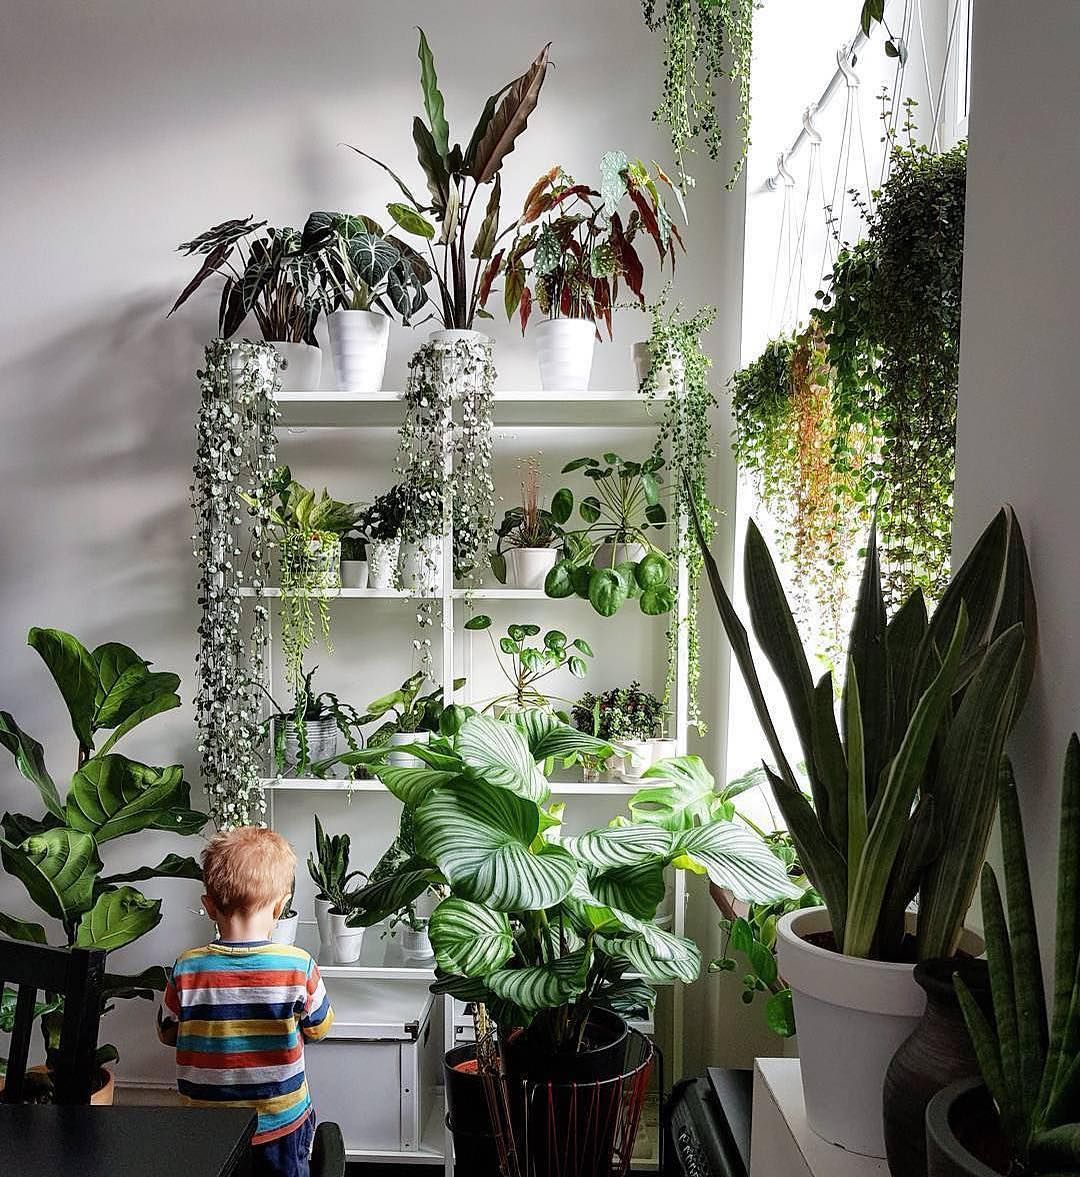 What A Wonderous Way To Grow Up Surrounded By An Indoor Jungle This Vibrant This Image Makes Me Wonder Did You G Plant Decor Indoor Plants Indoor Plant Wall